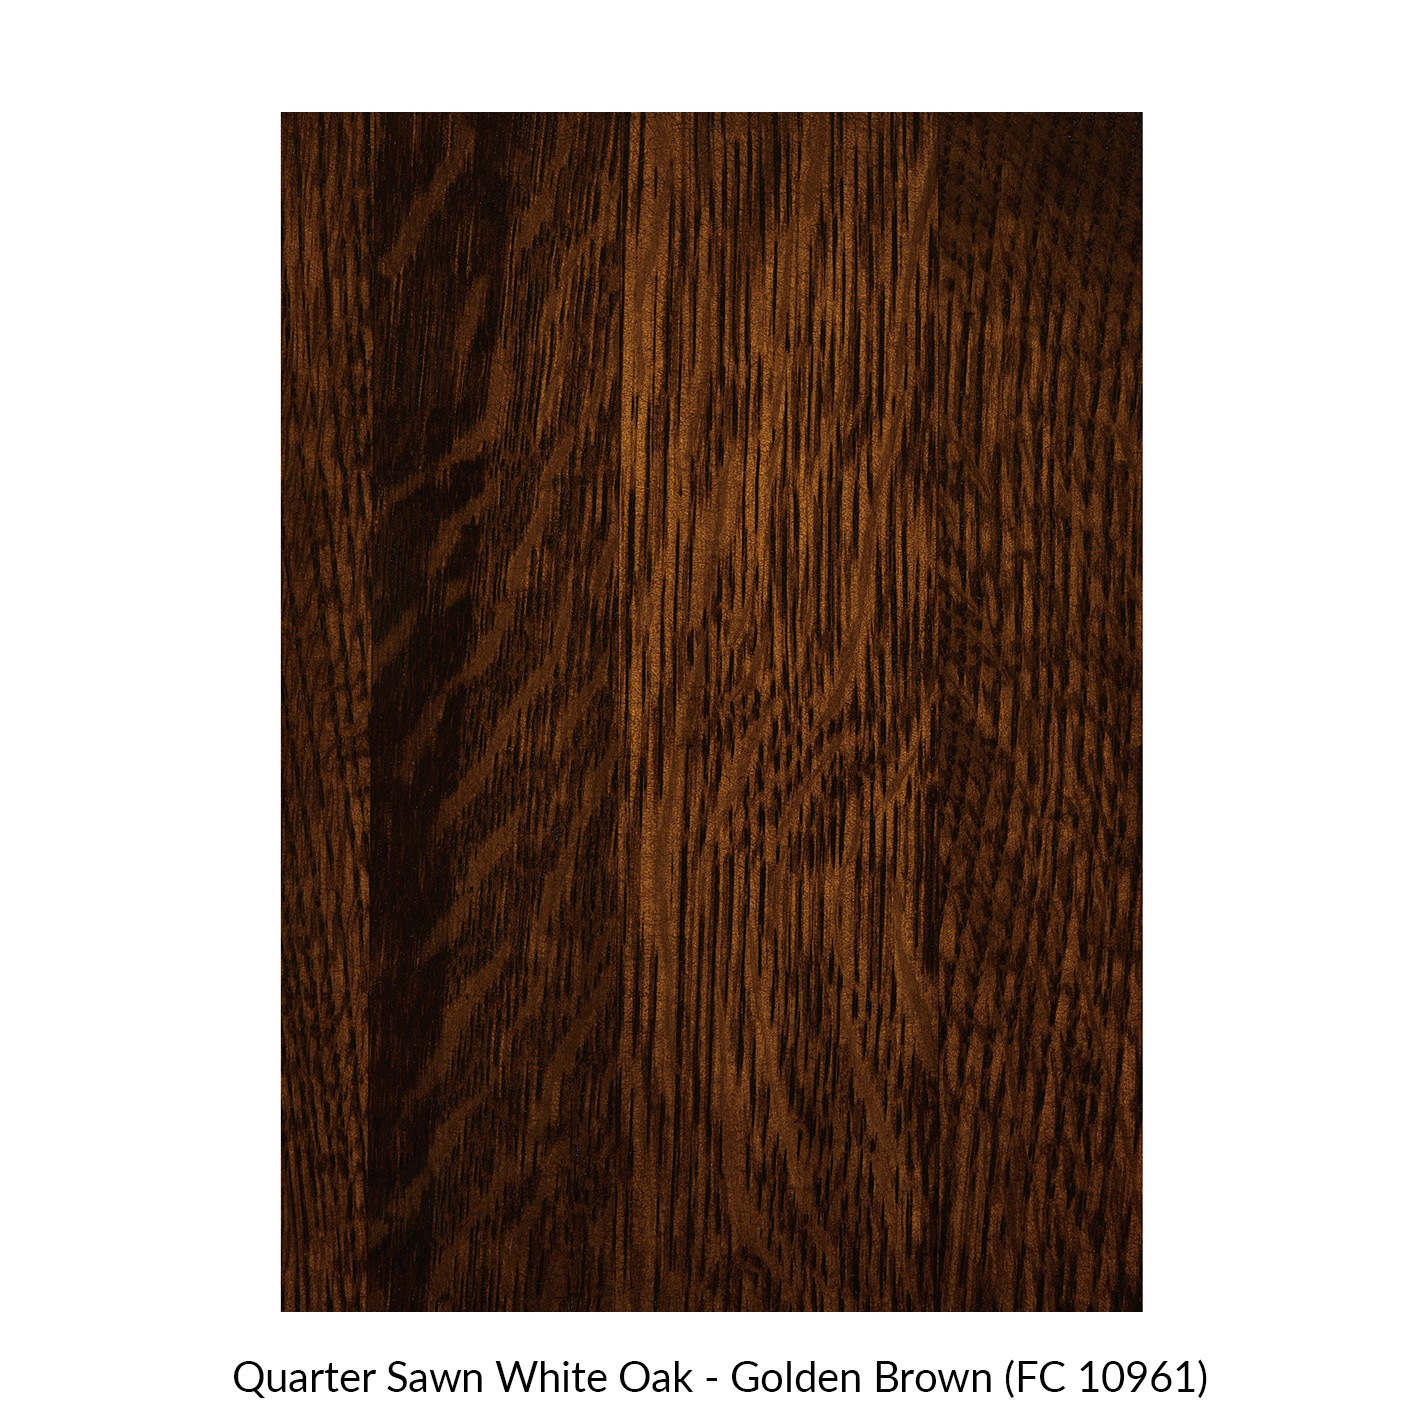 spectrum-quarter-sawn-white-oak-golden-brown-fc-10961.jpg